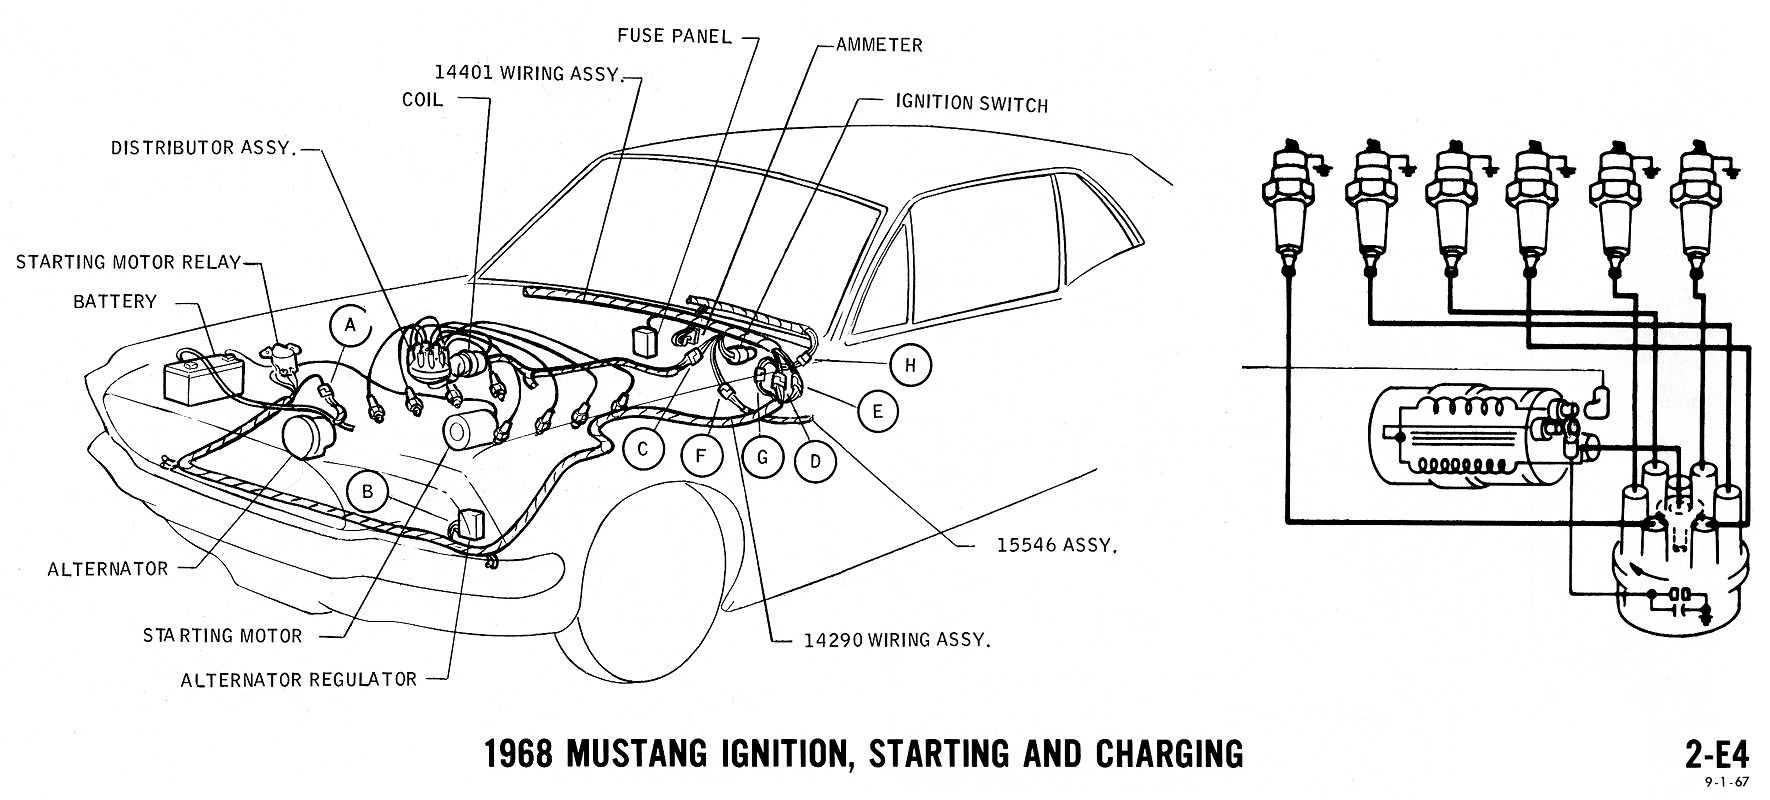 1968 mustang wiring diagrams evolving software rh peterfranza com 1966 mustang alternator wiring diagram 1968 mustang alternator wiring diagram